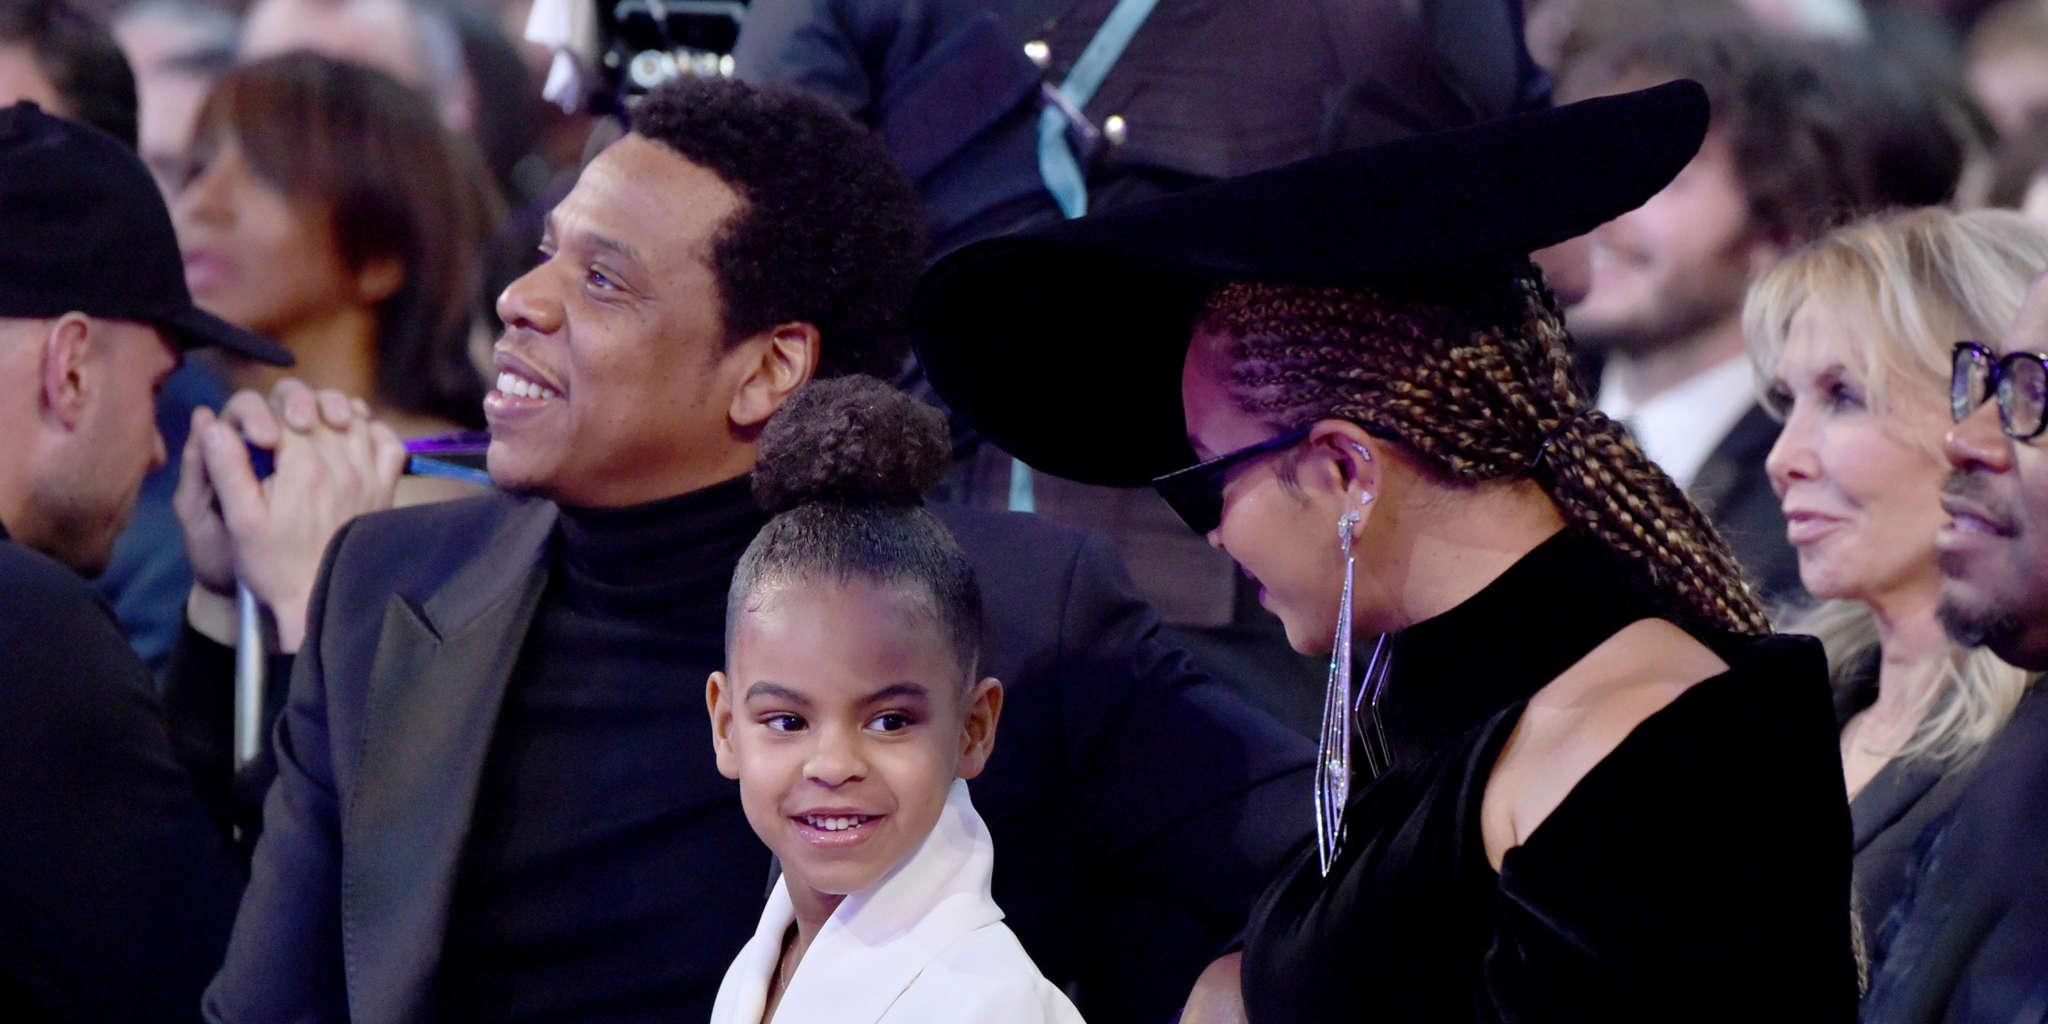 Beyonce And Jay-Z's Daughter Blue Ivy Could Win A Grammy After 'Hair Love' Audiobook Gig!